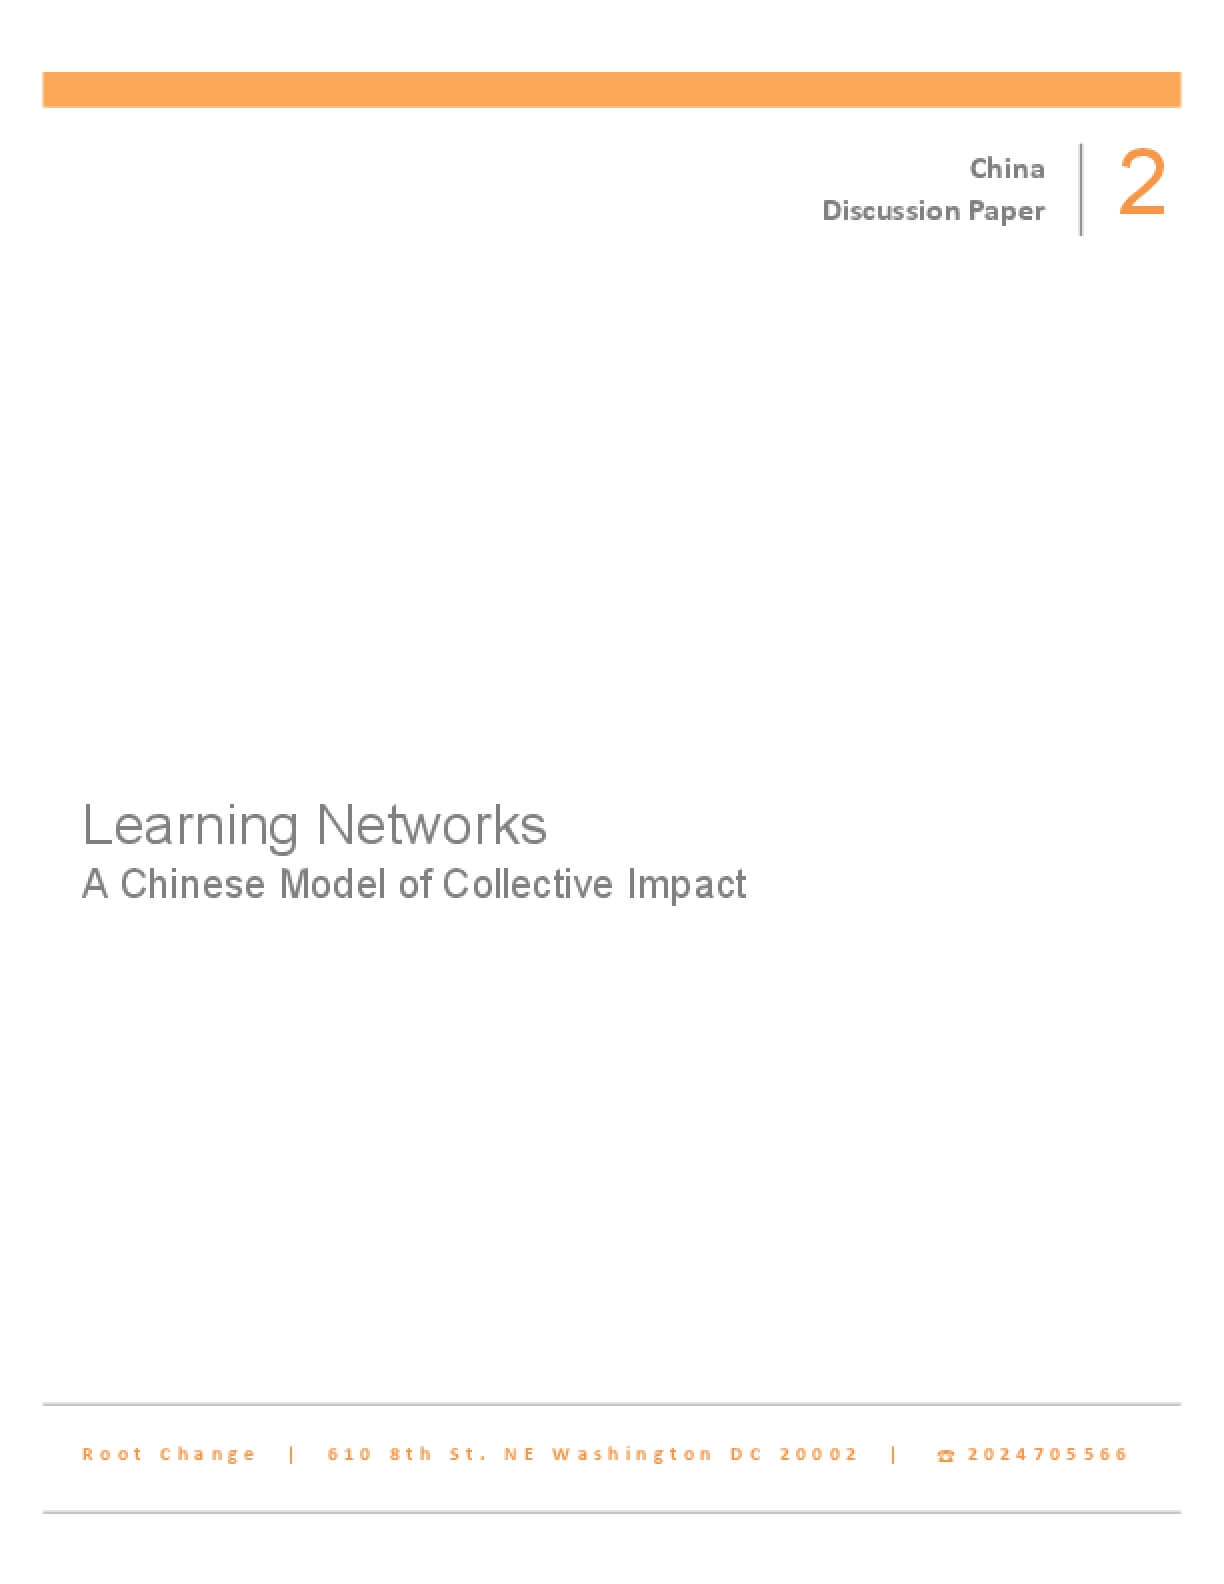 Learning Networks: A Chinese Model of Collective Impact